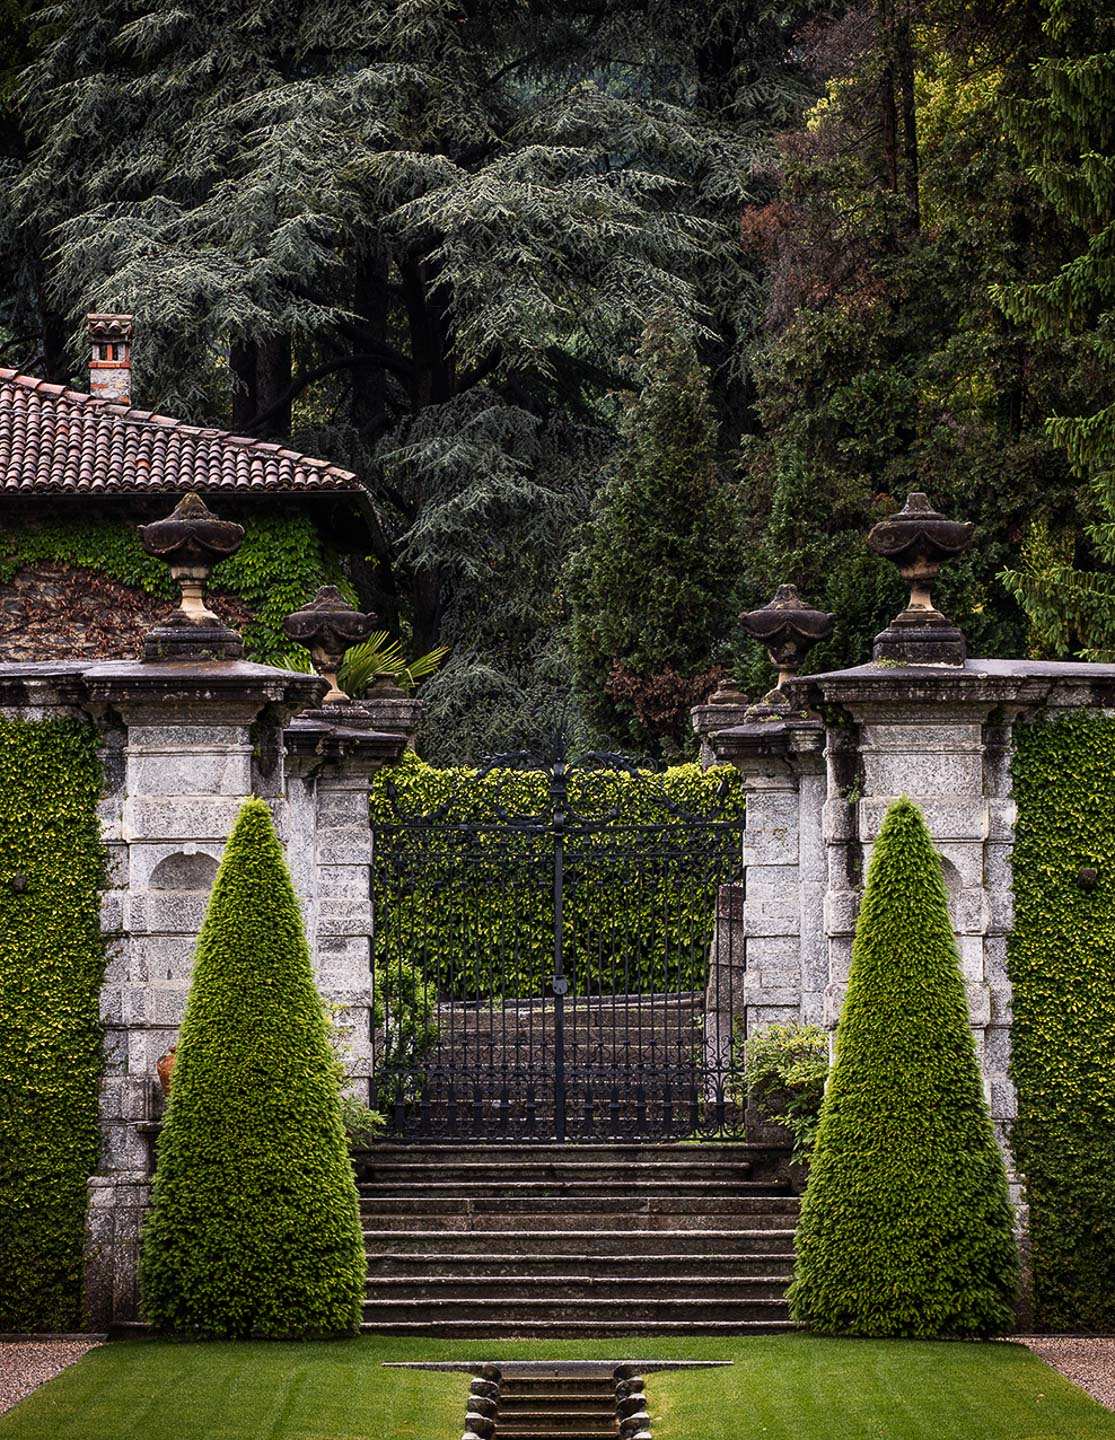 Villa Balbiano luxury property Lake Como Italy main original beautiful famous gate cardinale Durini residence 17 century access wedding ceremony exclusive events guests